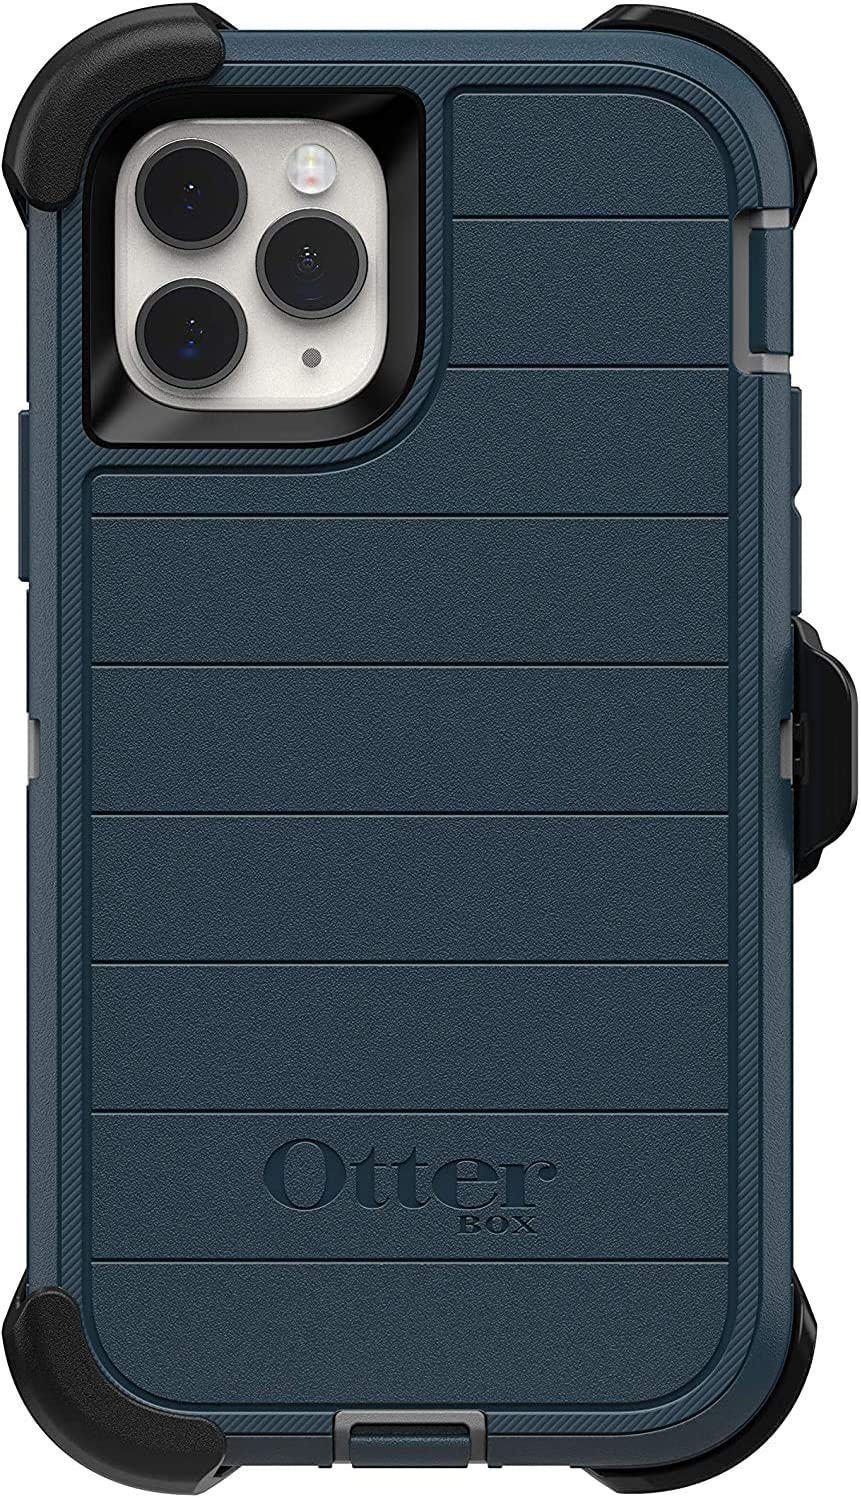 OtterBox Defender Series Rugged Case & Holster for iPhone 11 Pro Only (Not for The Pro Max Model) - Non Retail Packaging - Gone Fishin Blue (with Microbial Defense)